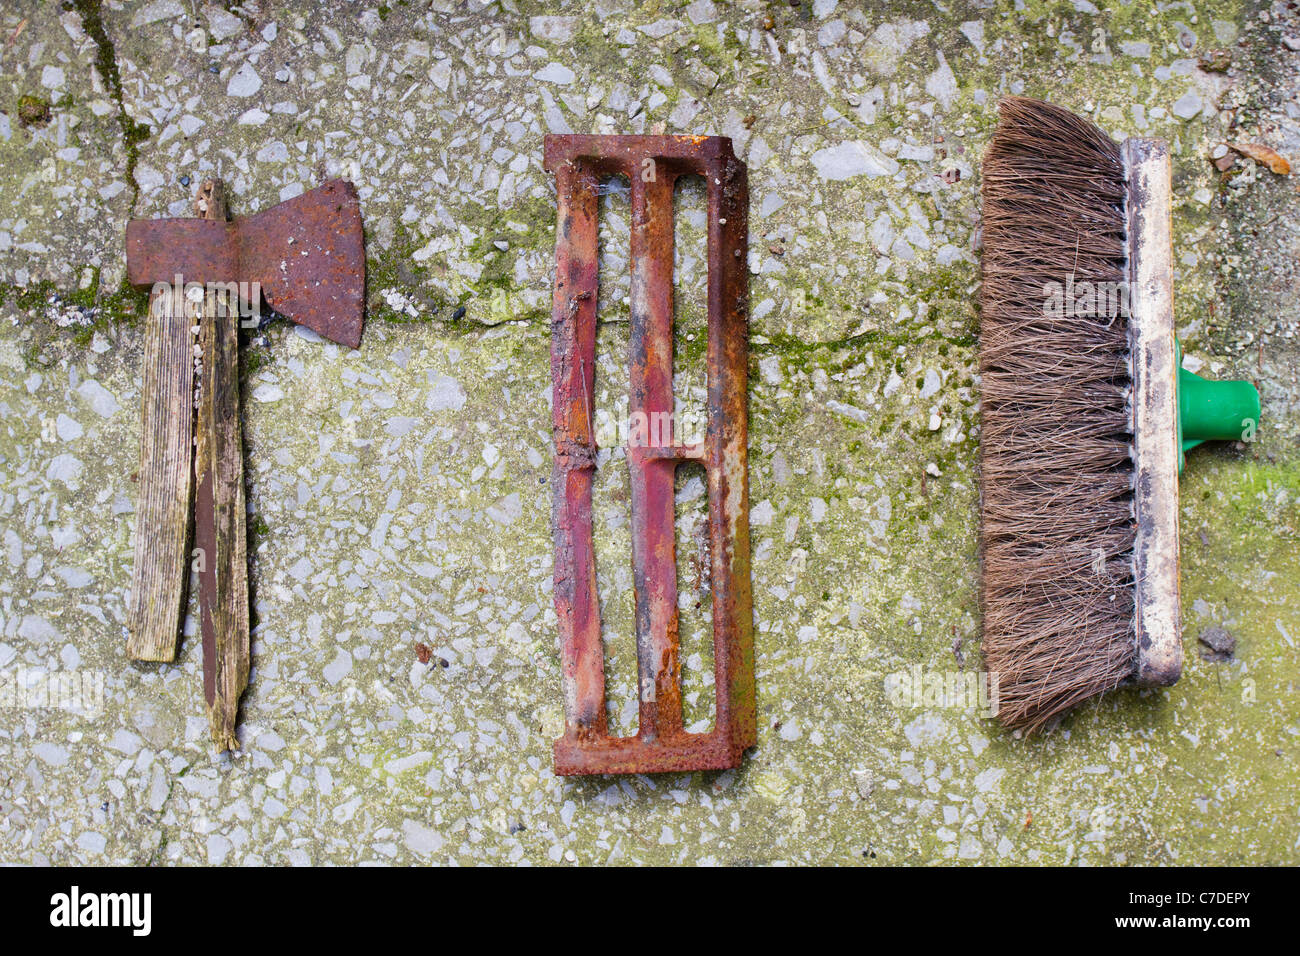 Old Broom Stock Photos & Old Broom Stock Images - Alamy